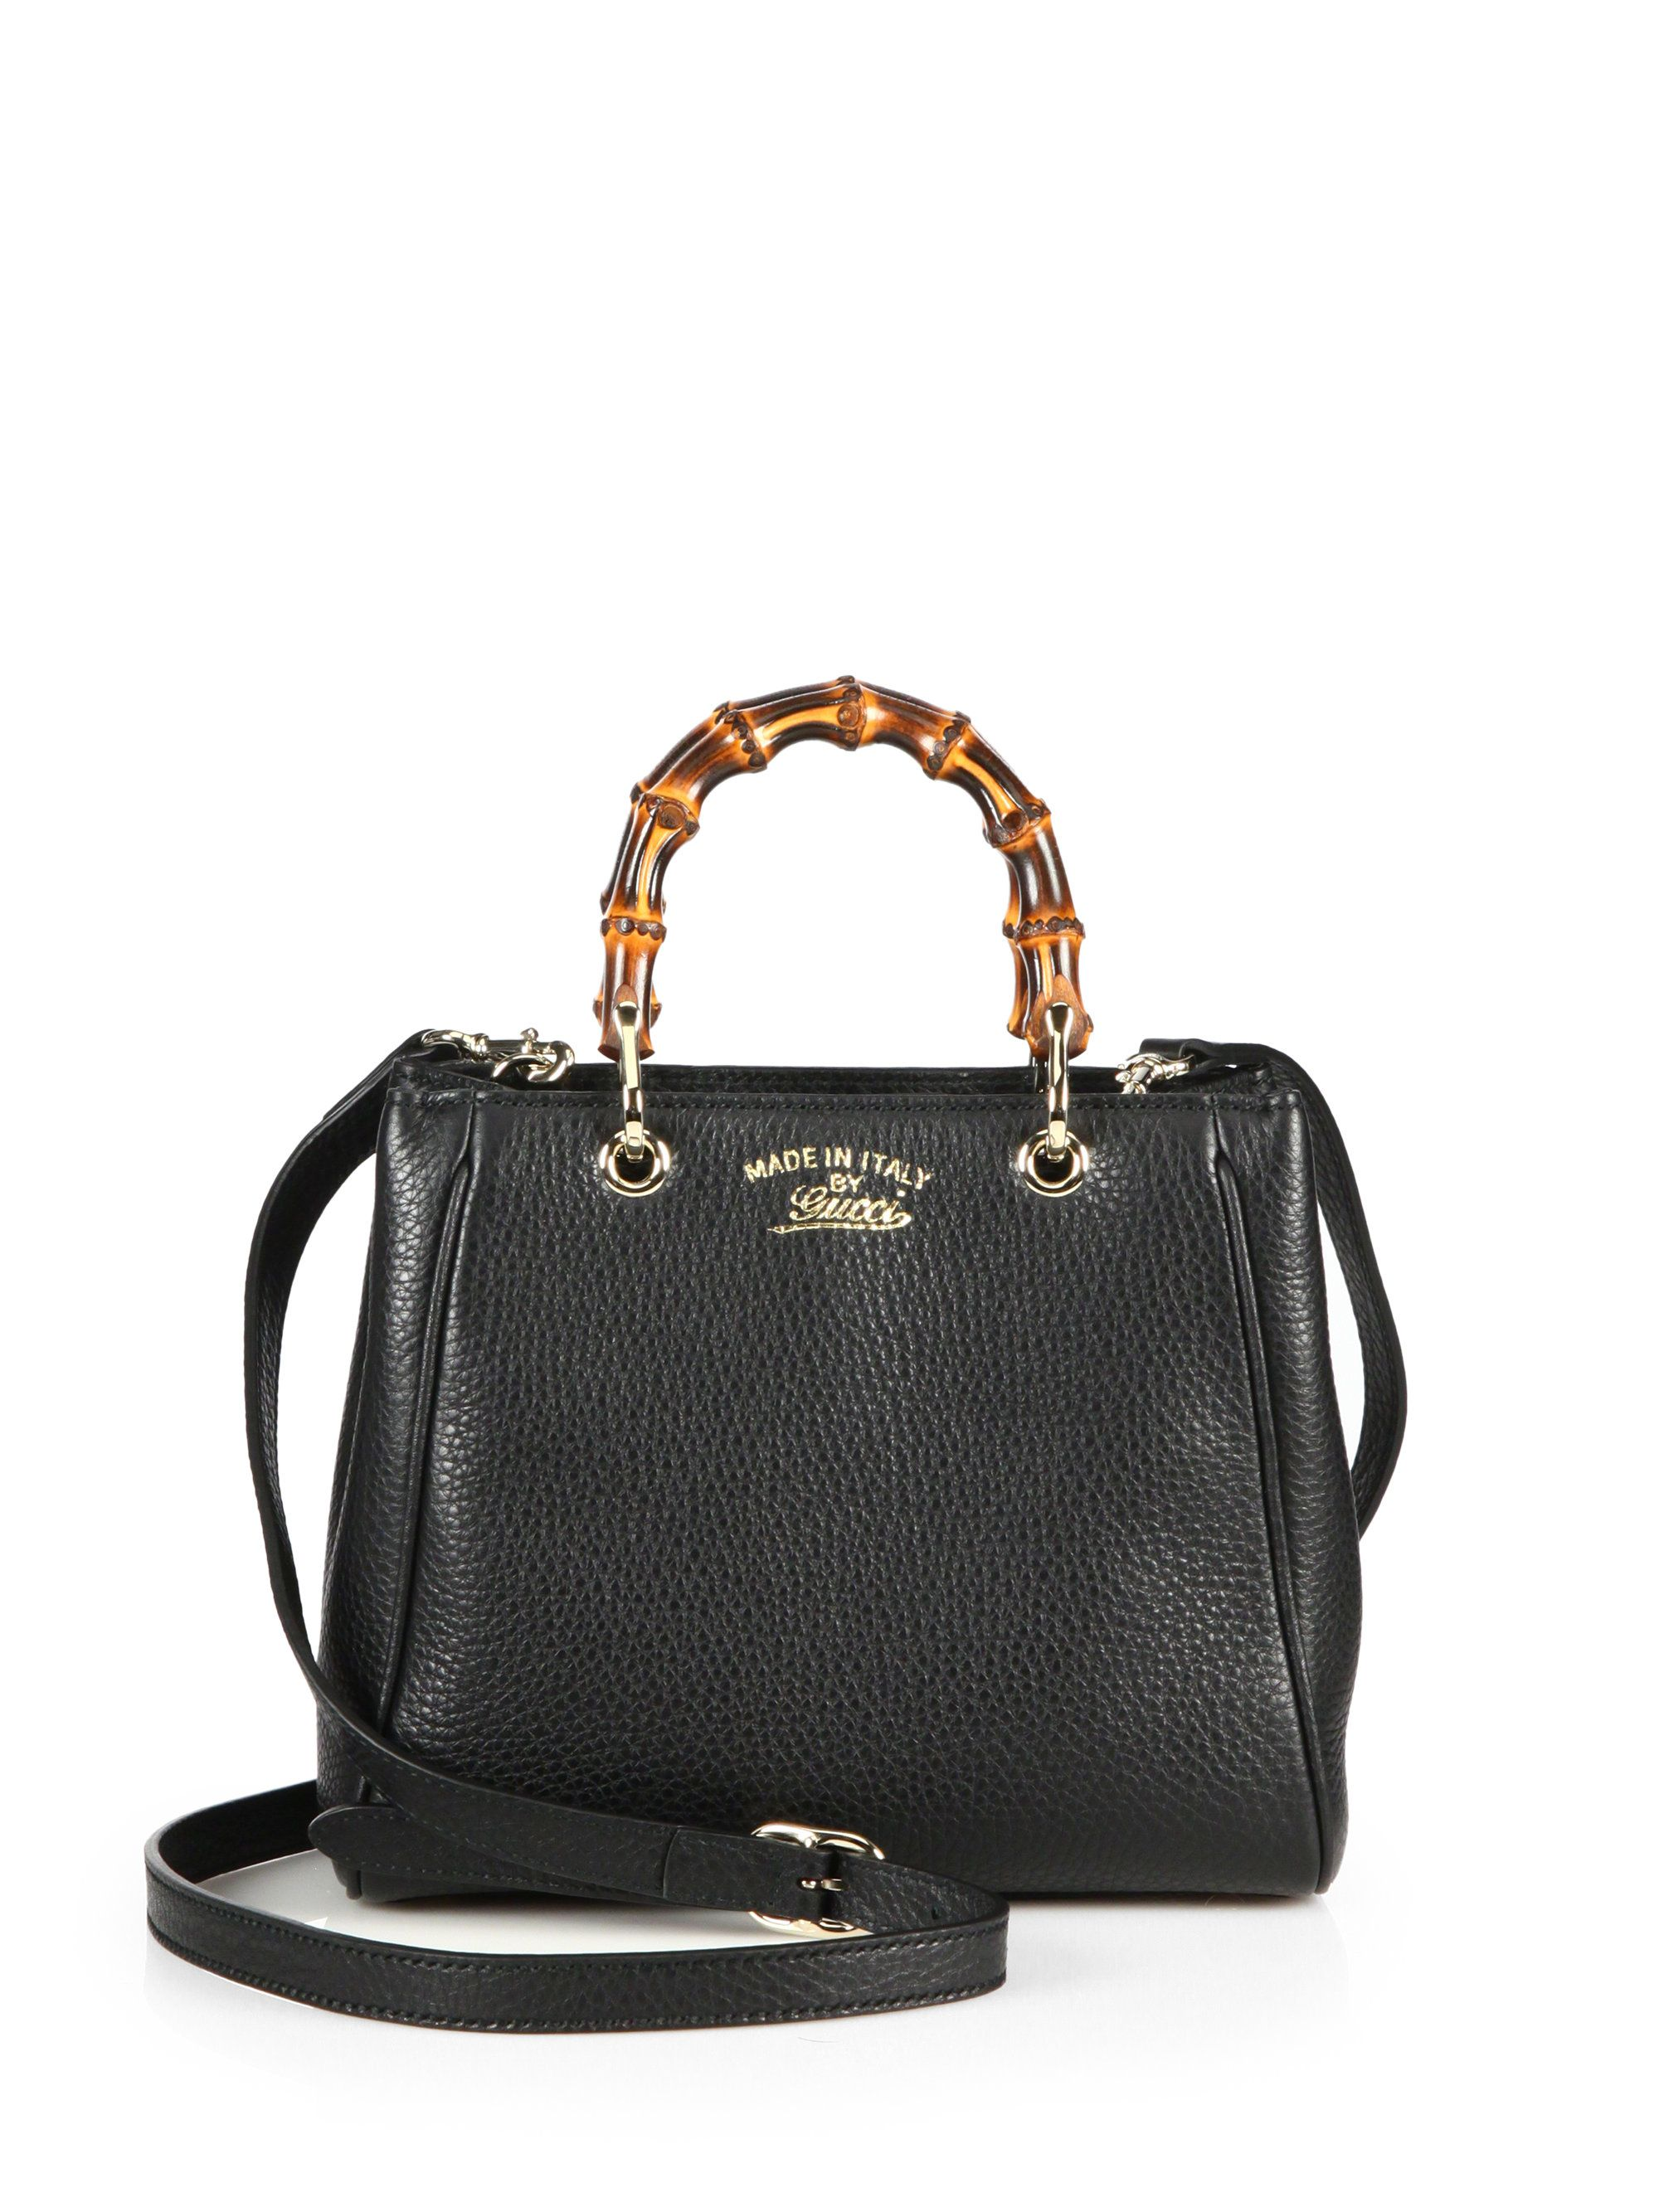 b84b33657522 Gucci Bamboo Shopper Mini Leather Top Handle Bag in Black (NERO-BLACK)